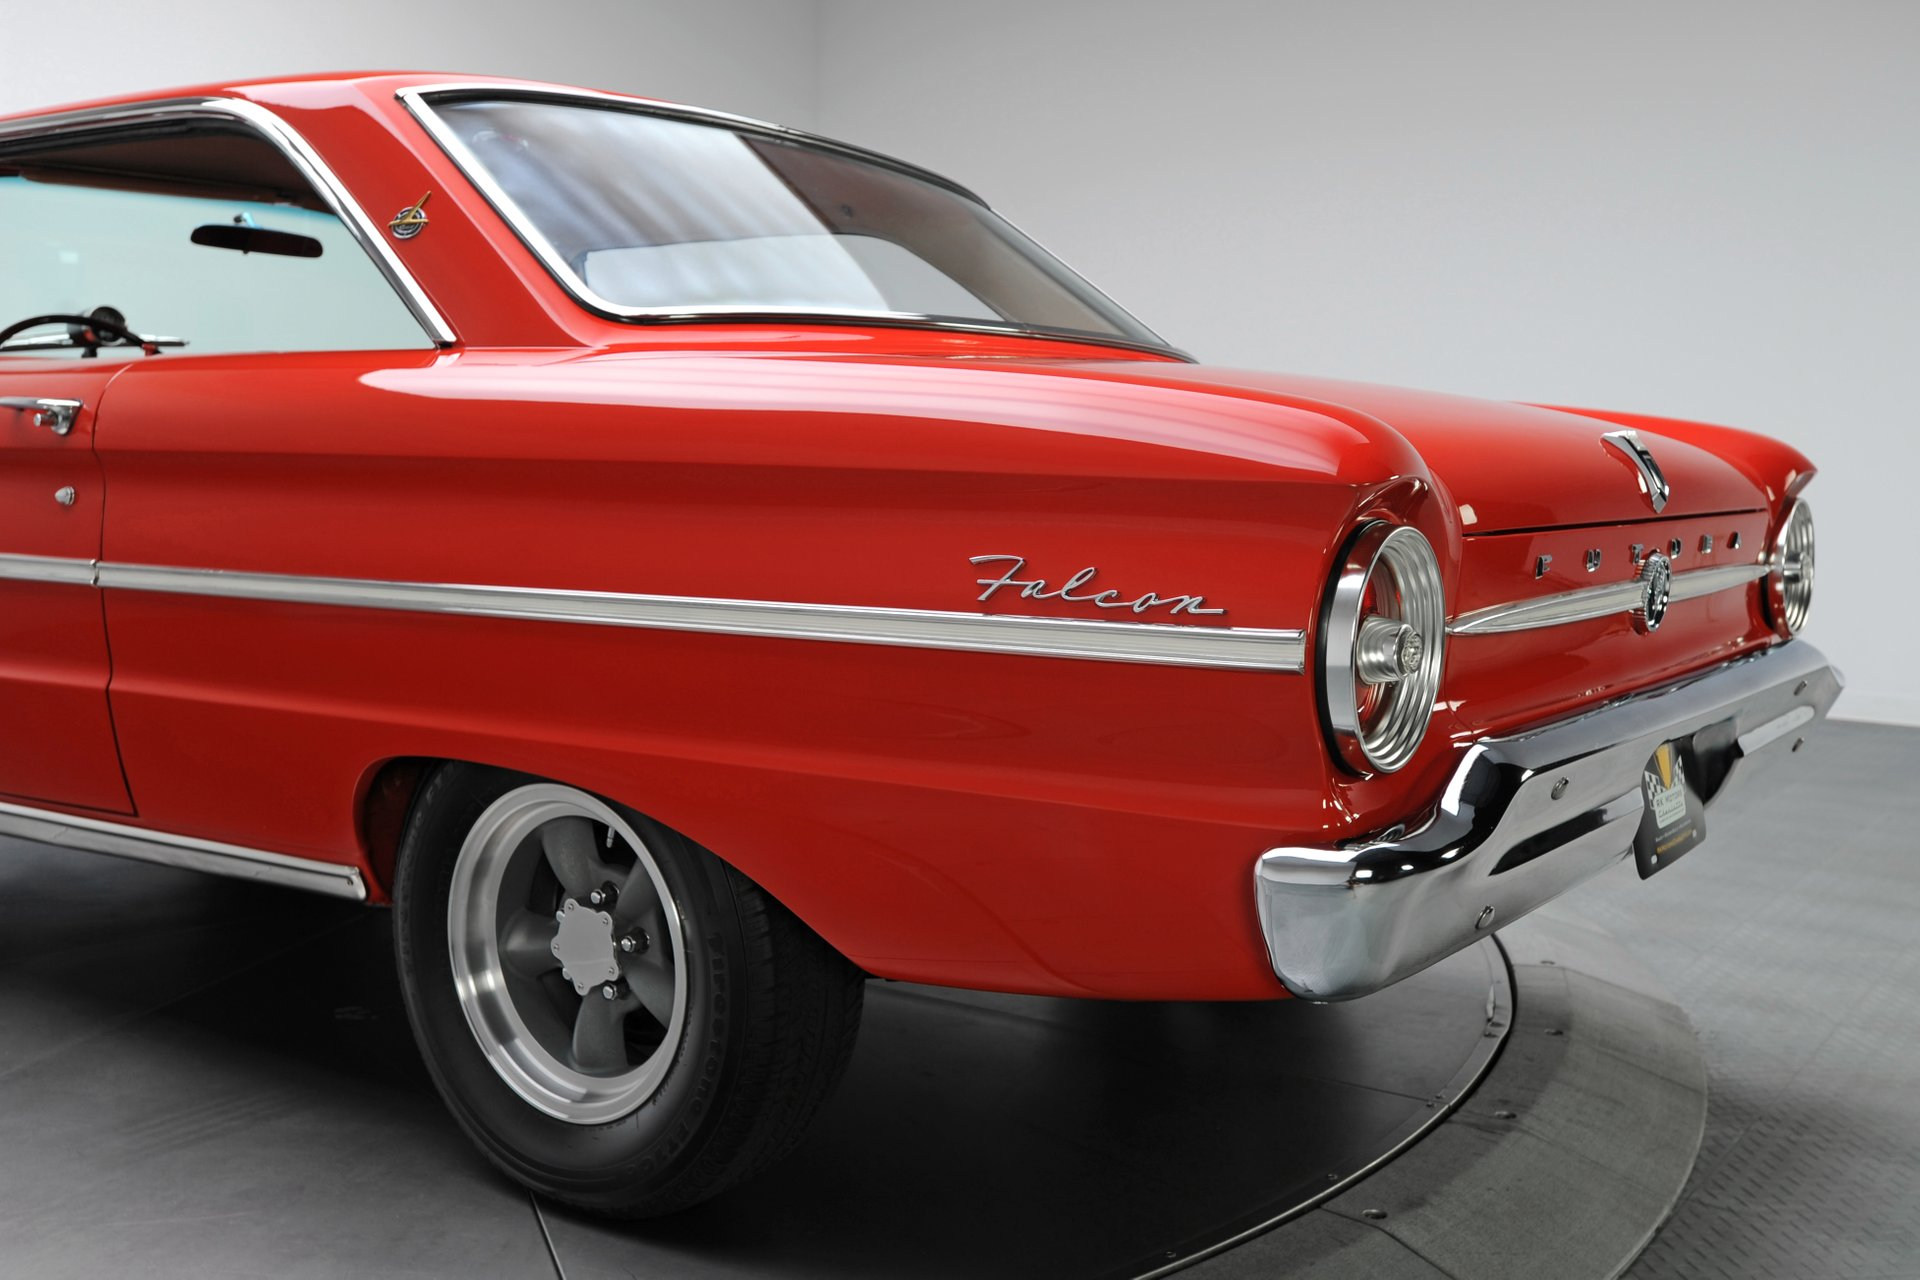 134213 1963 1/2 Ford Falcon RK Motors Classic Cars for Sale